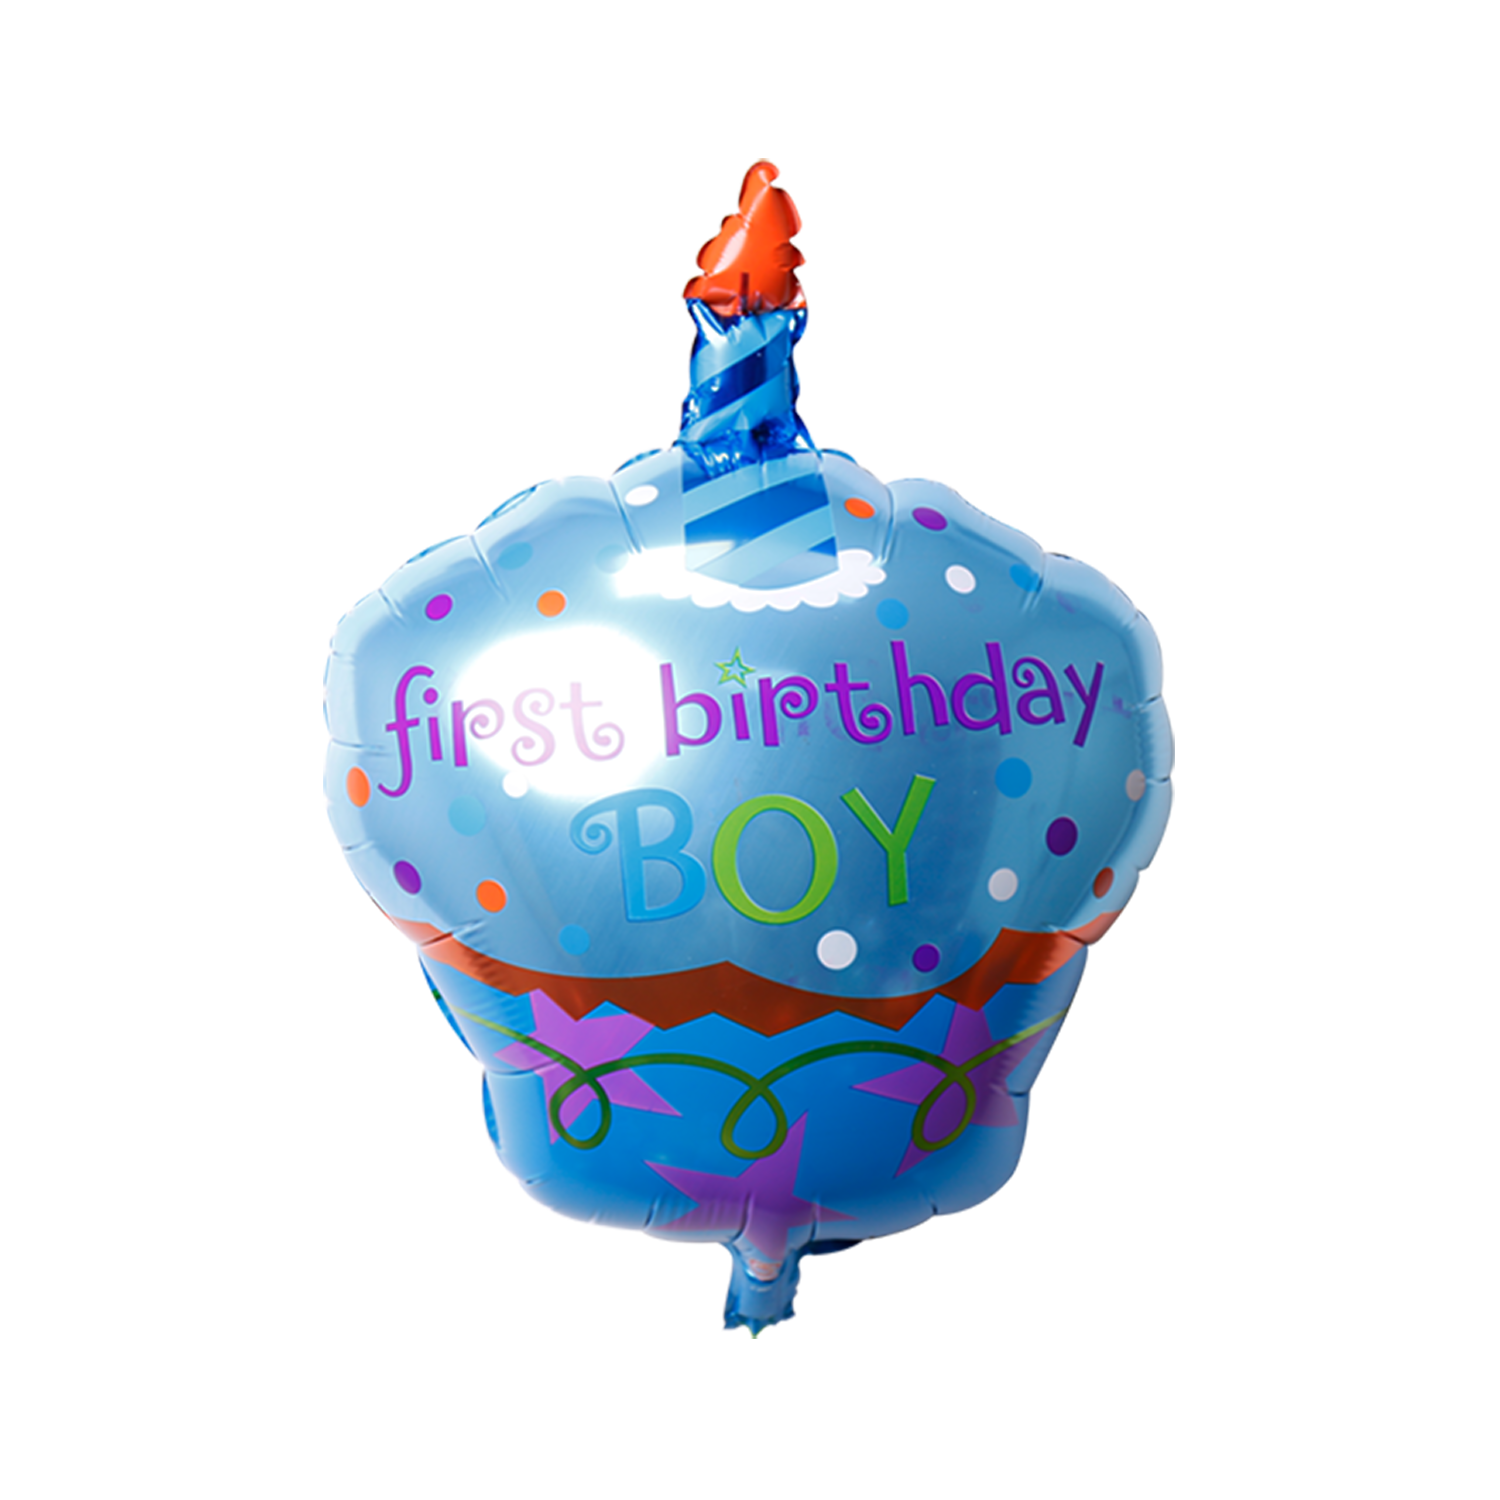 First Birthday Boy Cupcake balloons delivery in Dubai